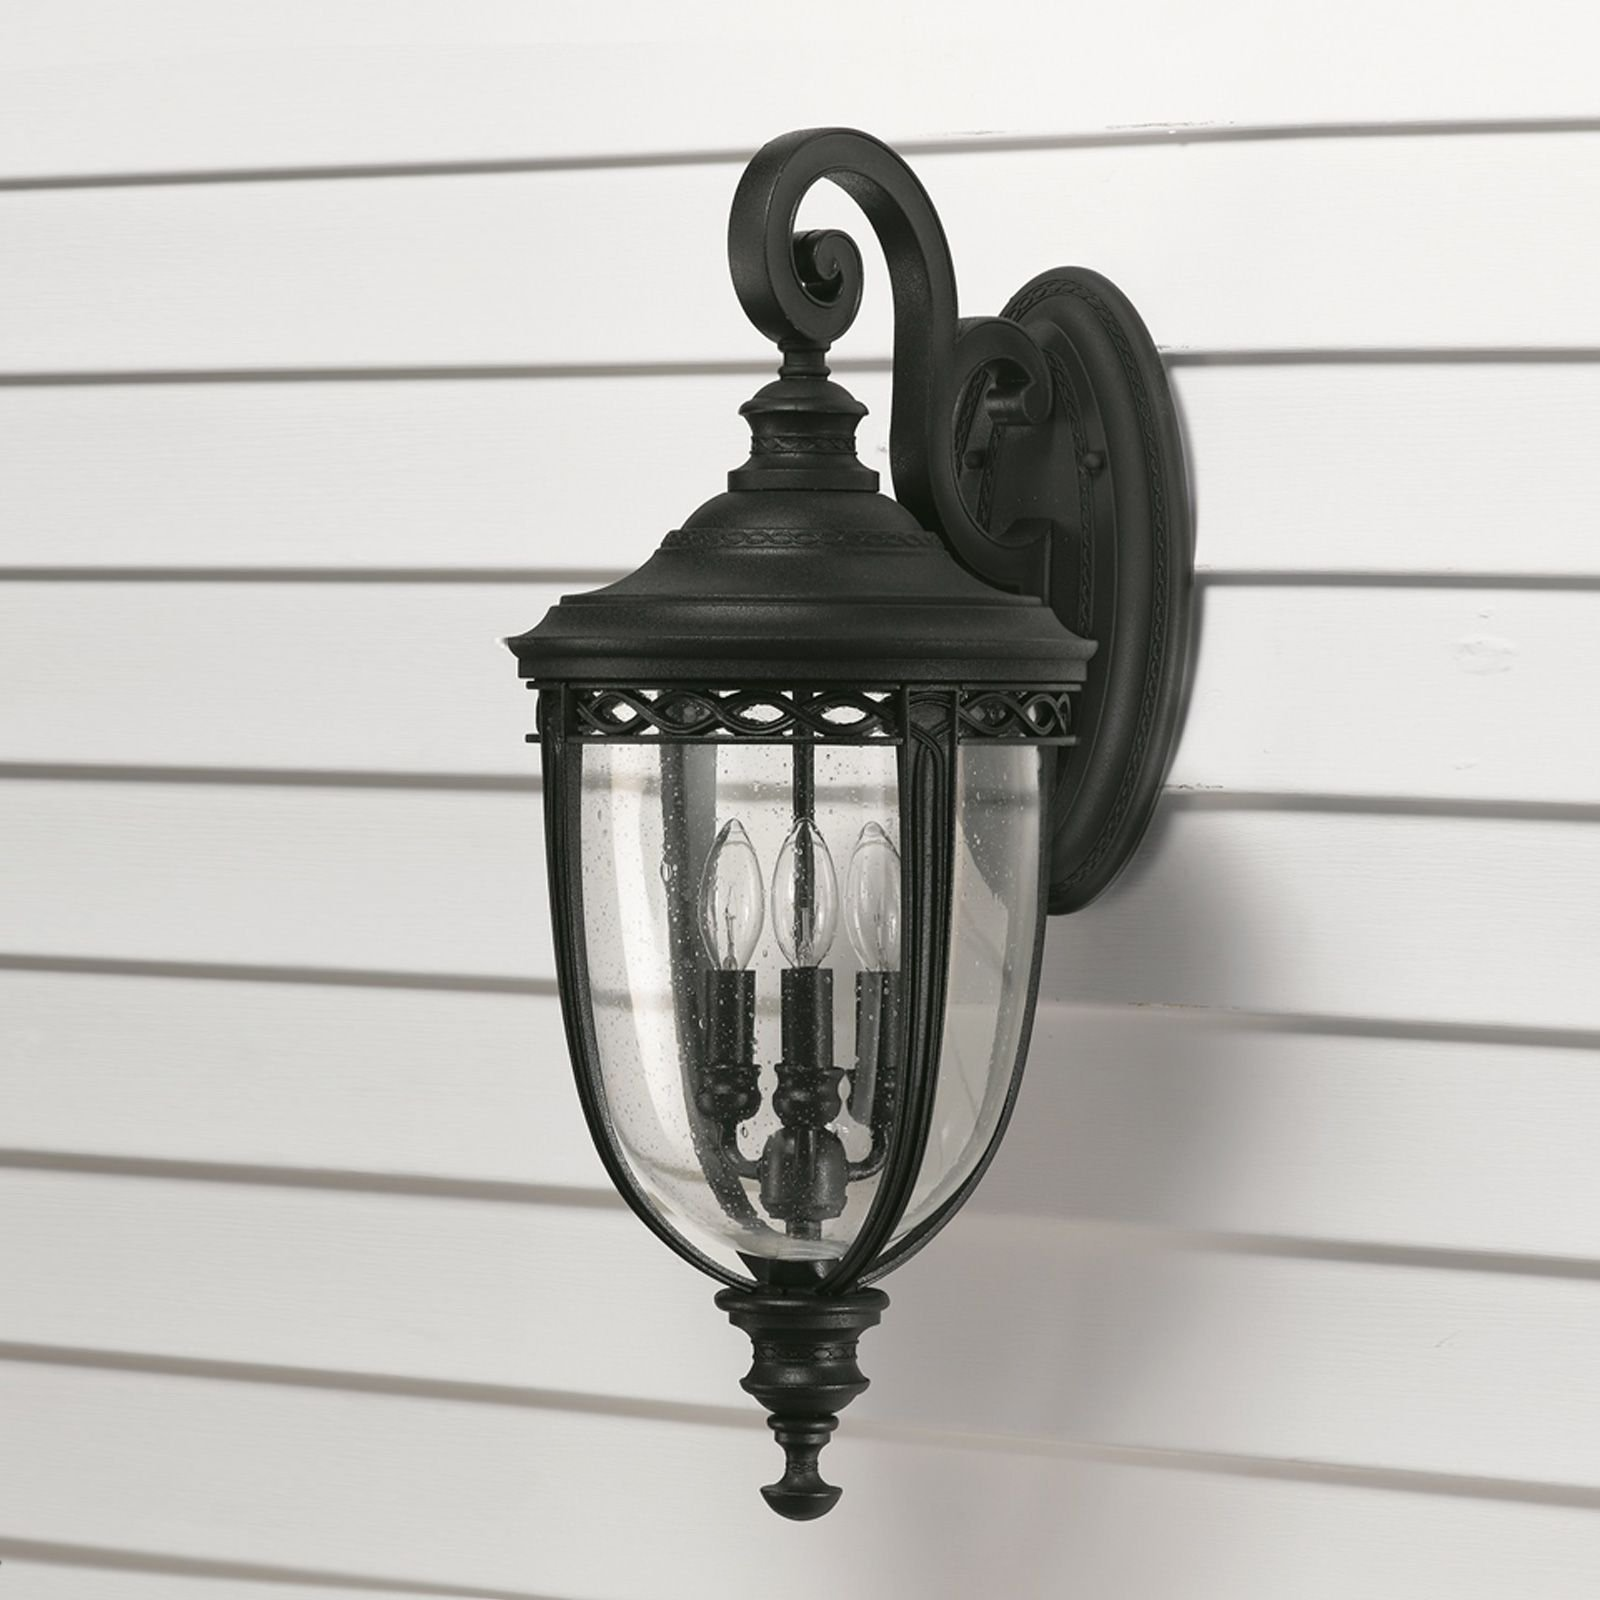 bridle wall light in black large outdoor wall lights. Black Bedroom Furniture Sets. Home Design Ideas